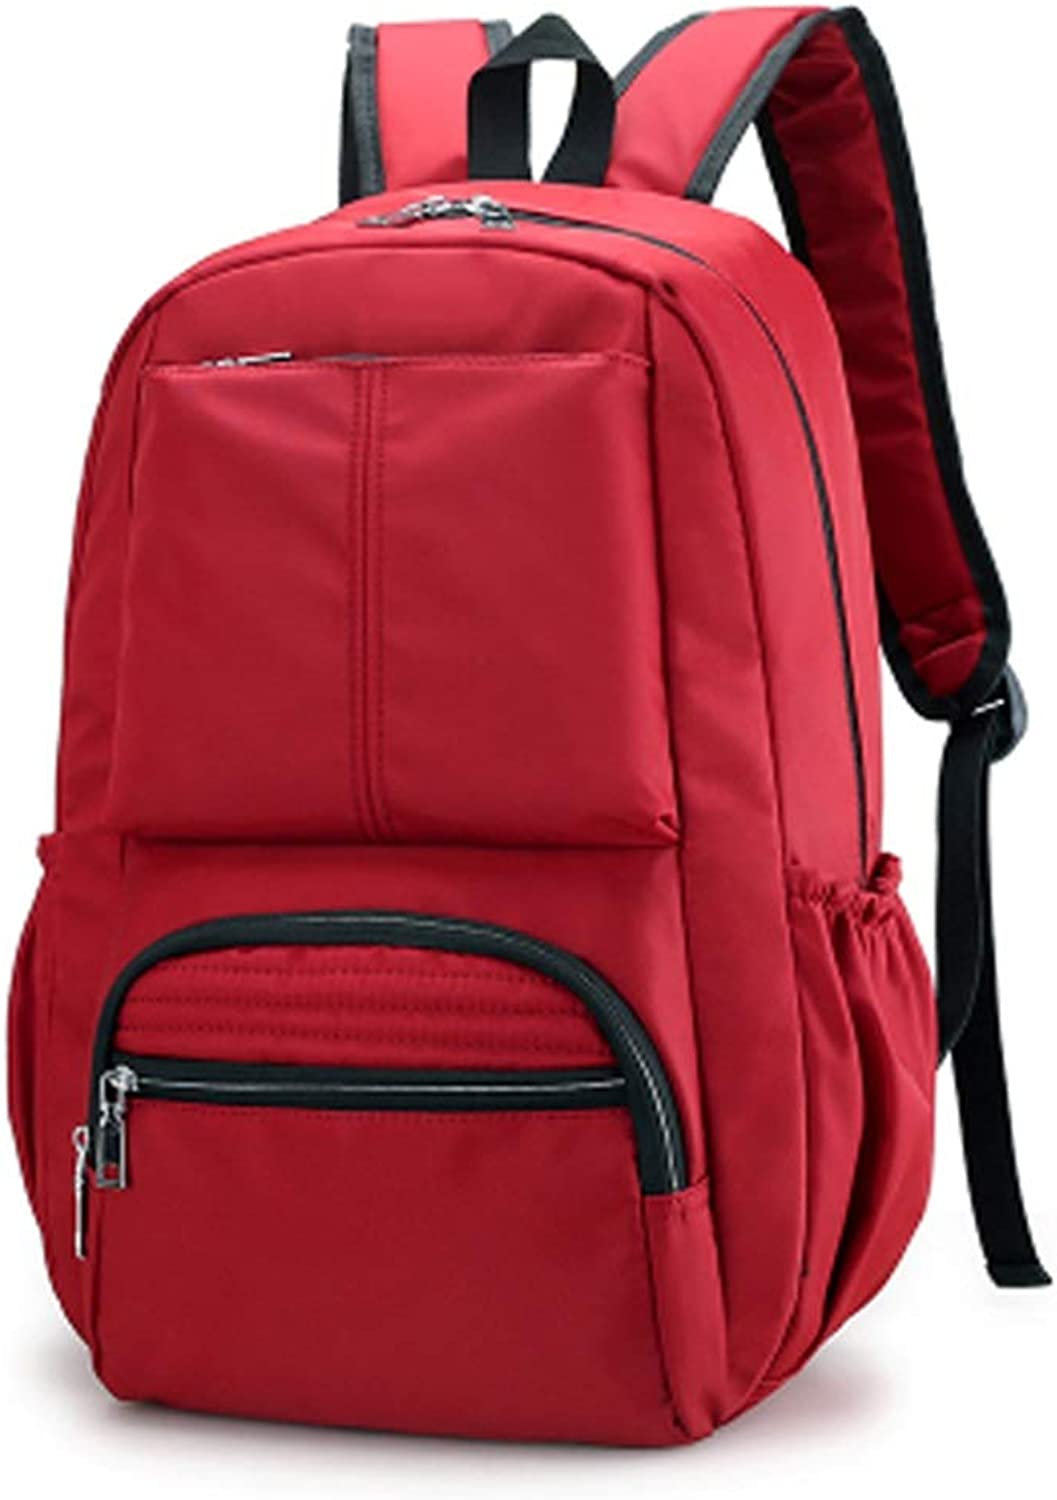 Casual Unisex Backpack Waterproof Lightweight Nylon Outdoor Sports and Hiking Bag Student Mountaineering Backpack